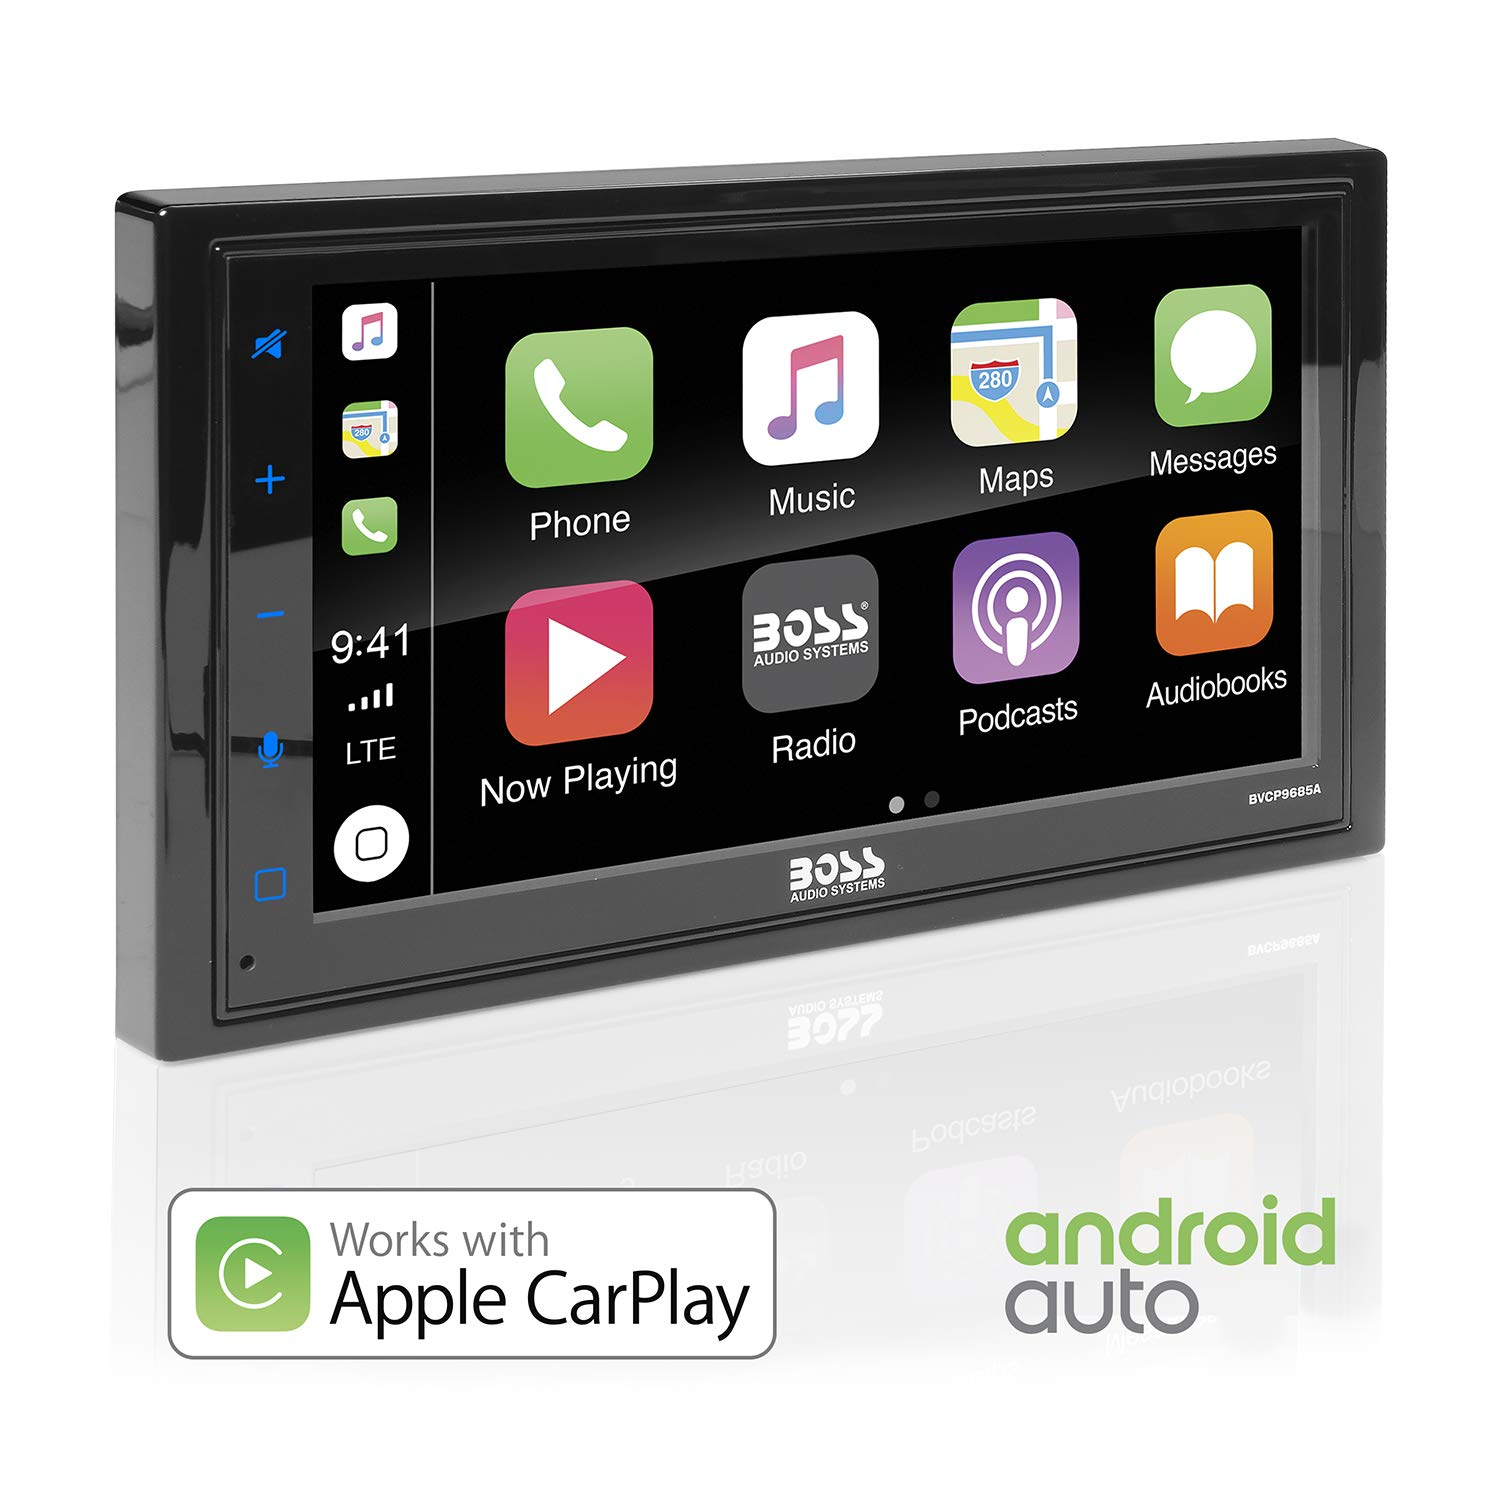 BOSS Audio BVCP9685A Apple Carplay Android Auto Car Multimedia Player - Double Din Car Stereo, 6.75 Inch LCD Touchscreen Monitor, Bluetooth, MP3 Player, USB Port, A/V Input, Am/FM Car Radio by BOSS Audio Systems